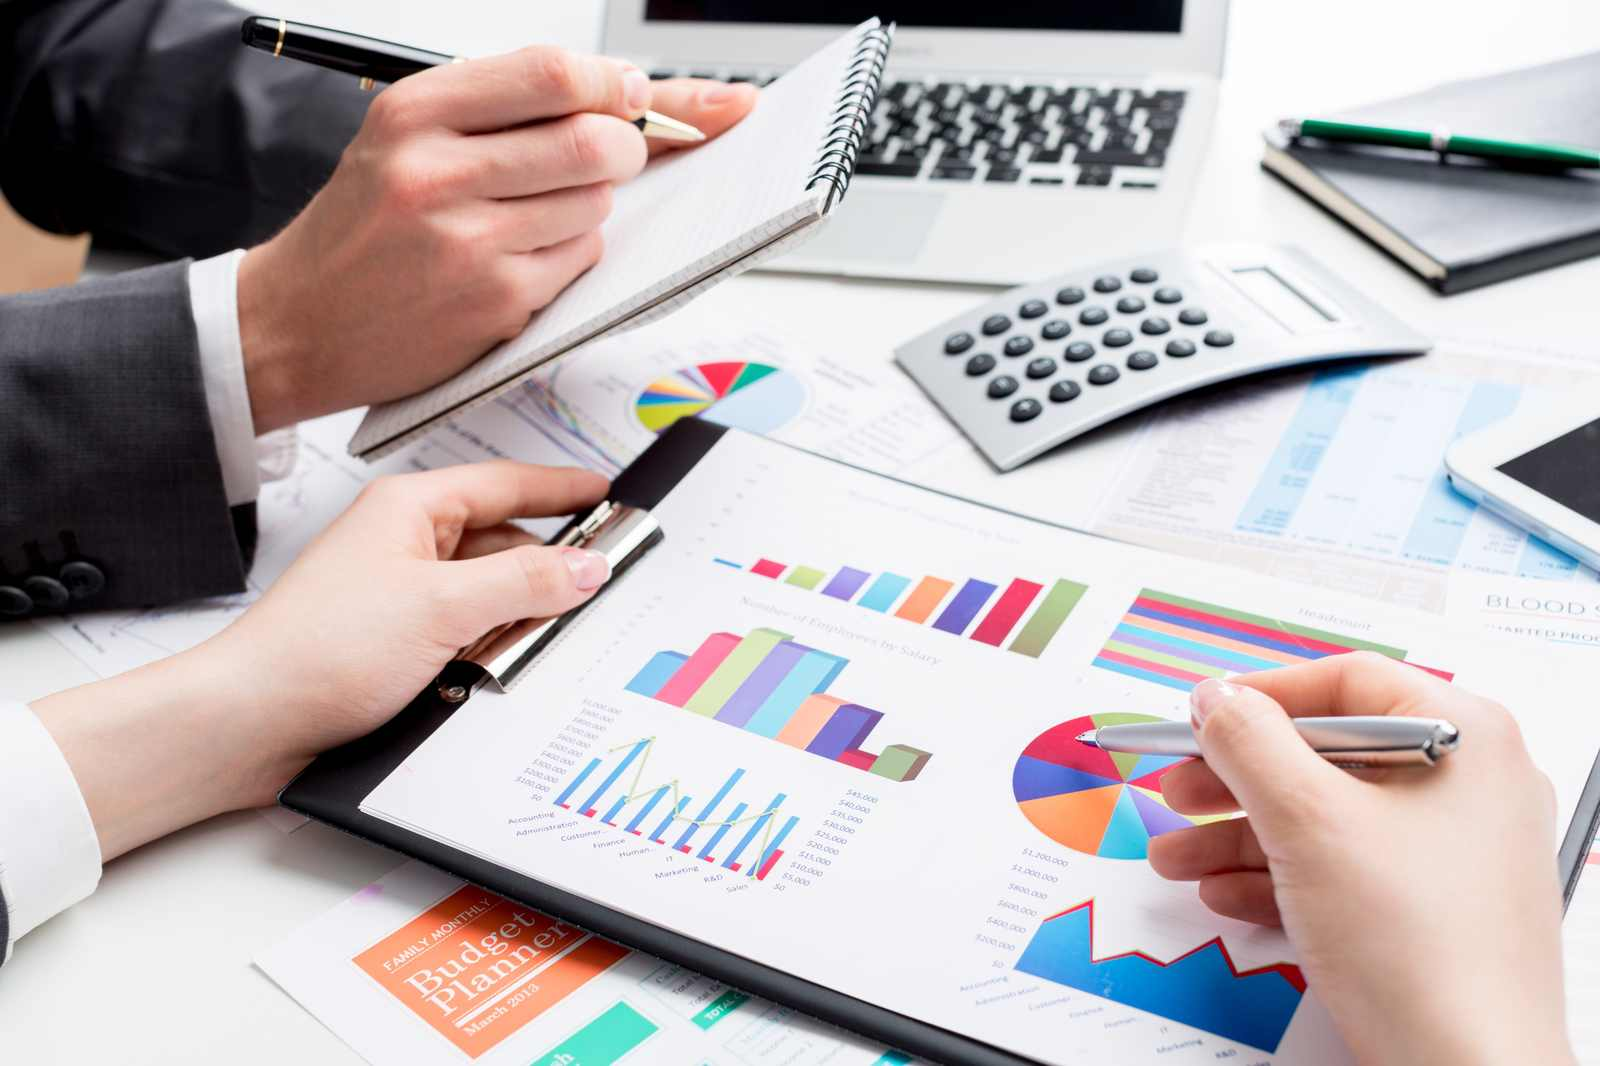 BAC304 Advanced Accounting Theory Assignment Help